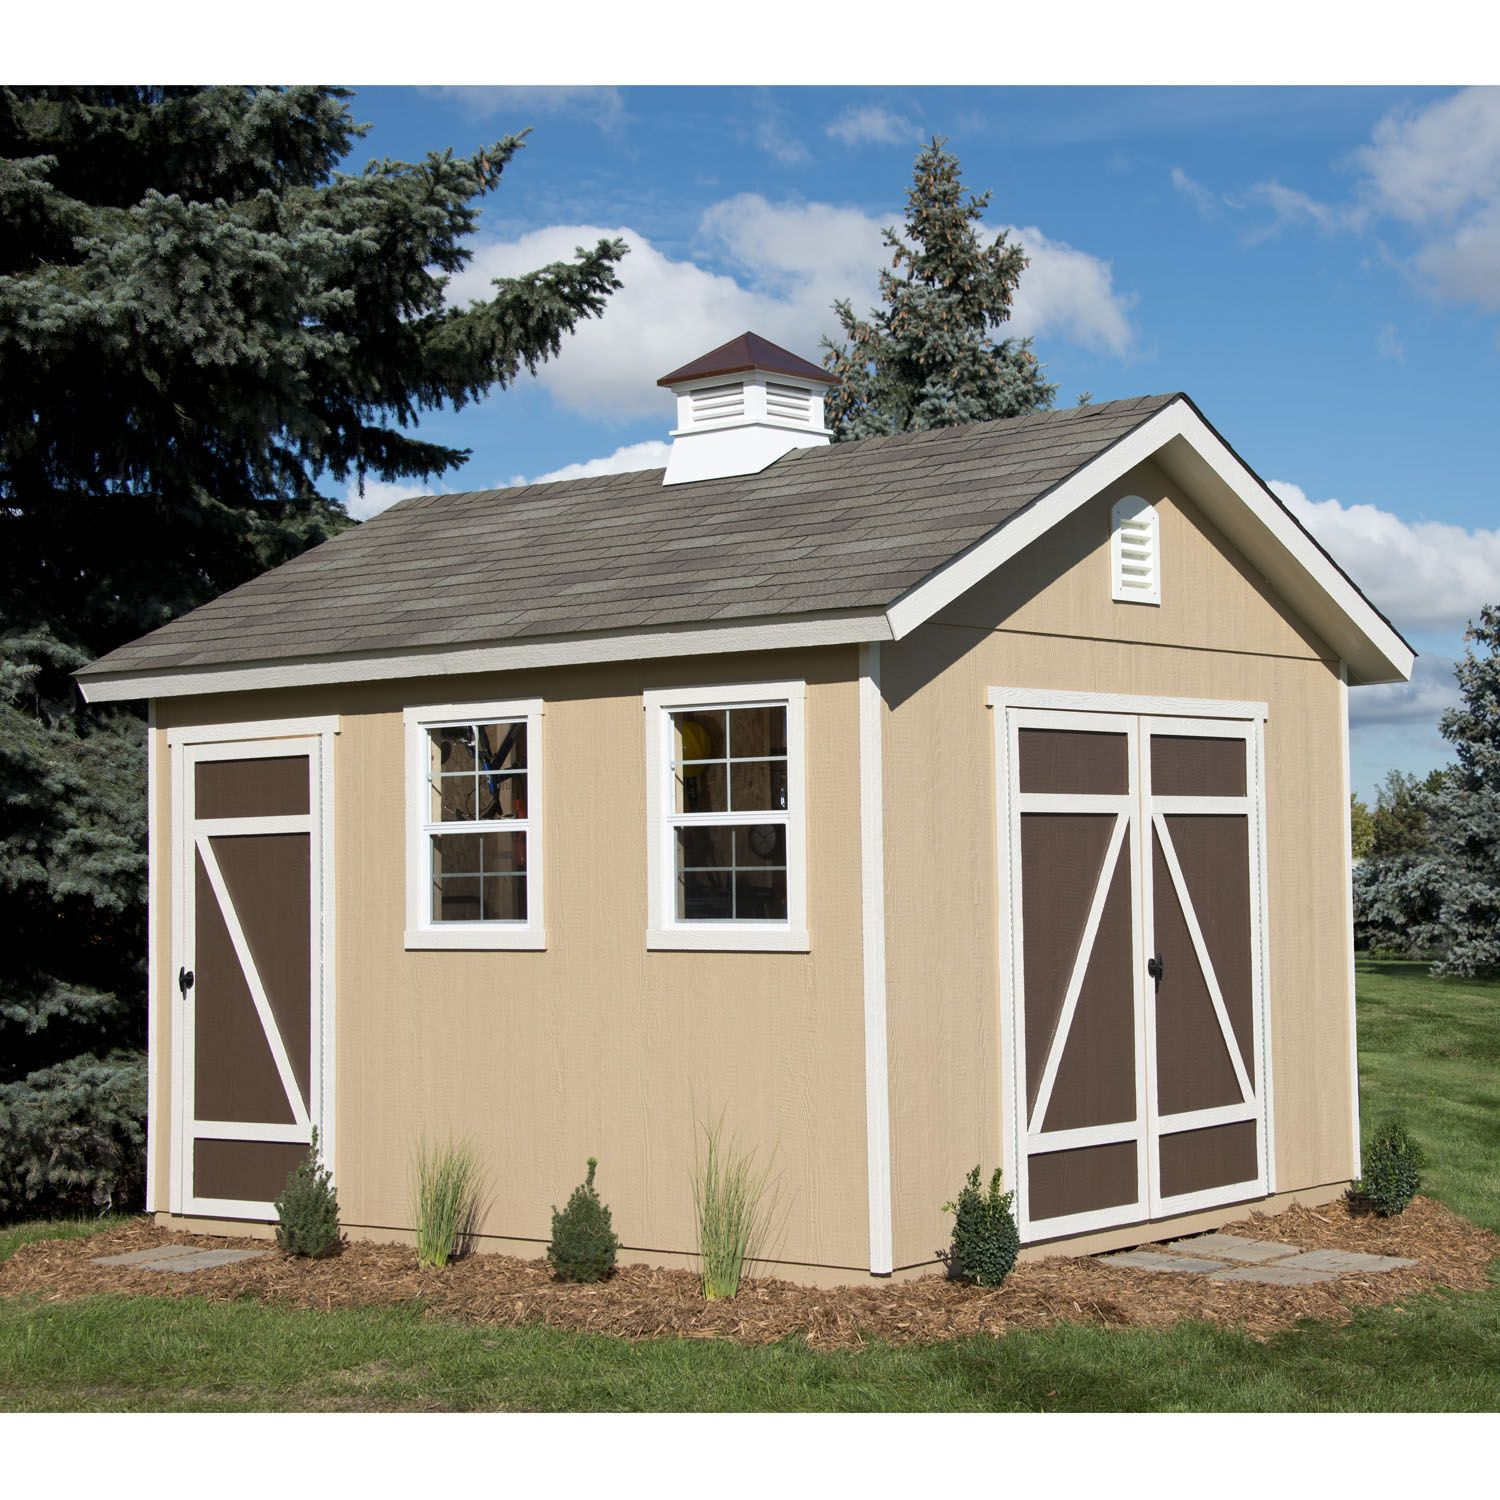 10x12 Wood Shed Get The Most Out Of Your 10x12 Shed Heartland Sheds Wood Shed Shed 10x12 Shed